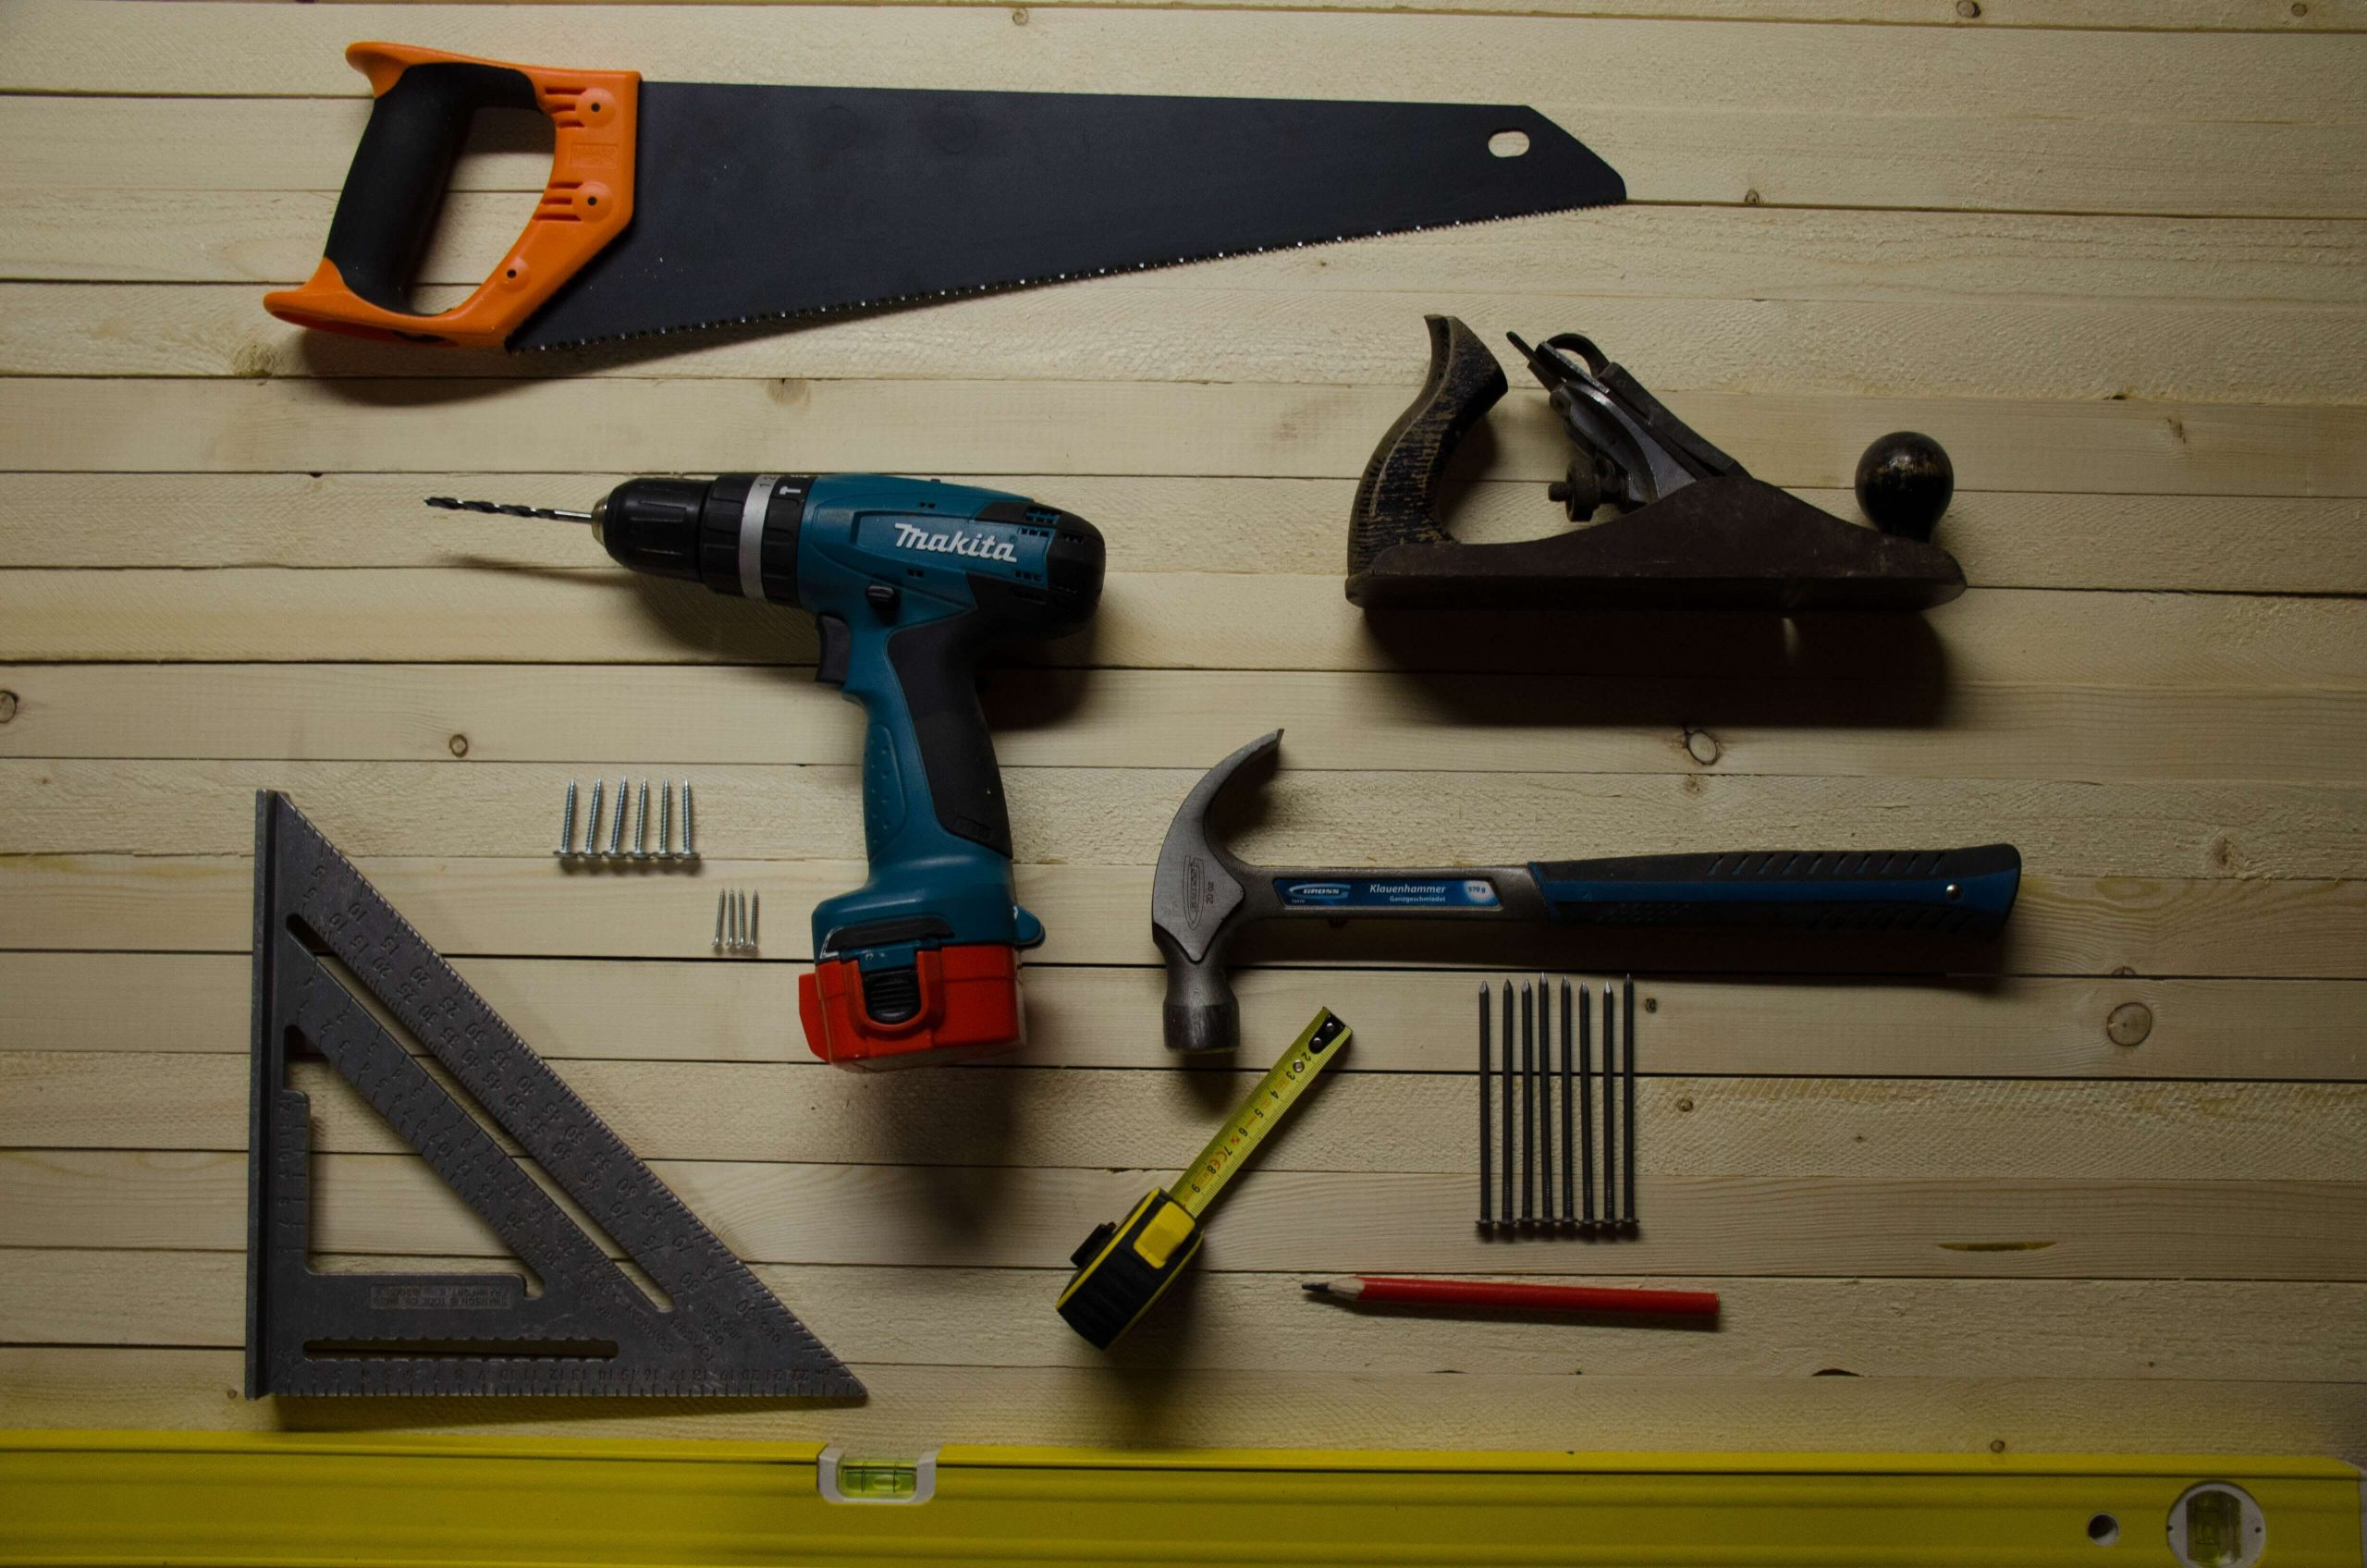 A set of builder tools neatly placed on a table